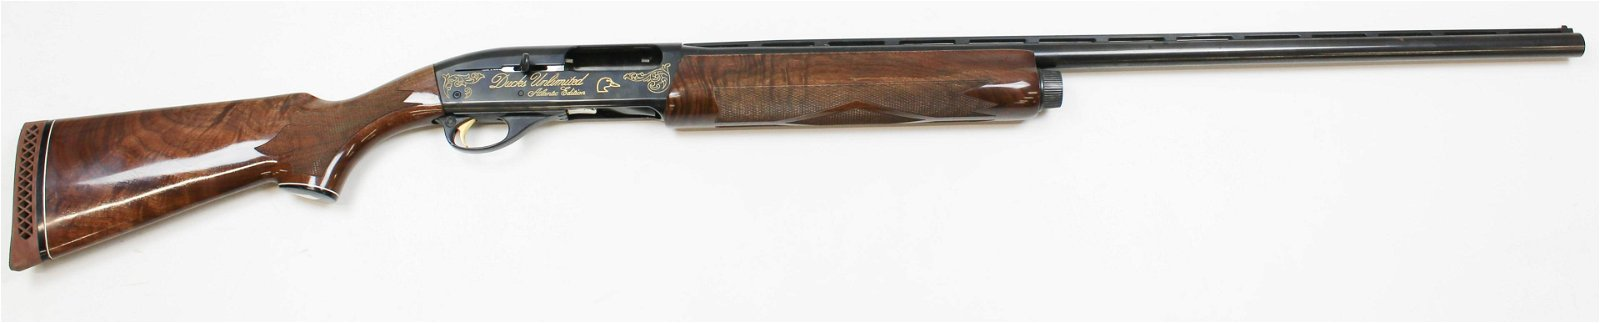 Remington Ducks Unlimited Model 1100 12ga